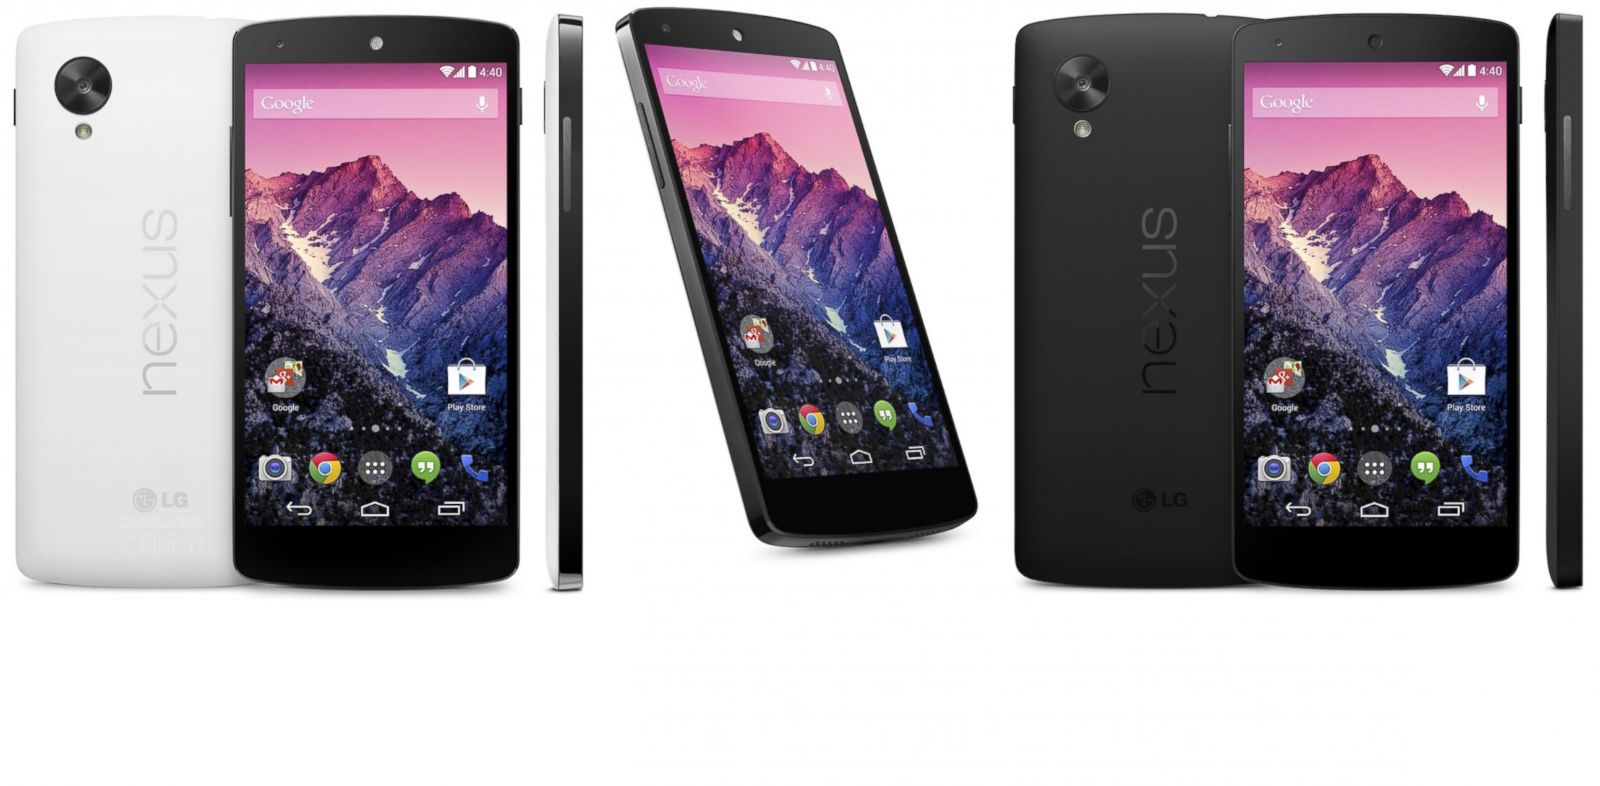 PHOTO: Smartphones like this Nexus 5 can help shoppers, but beware.